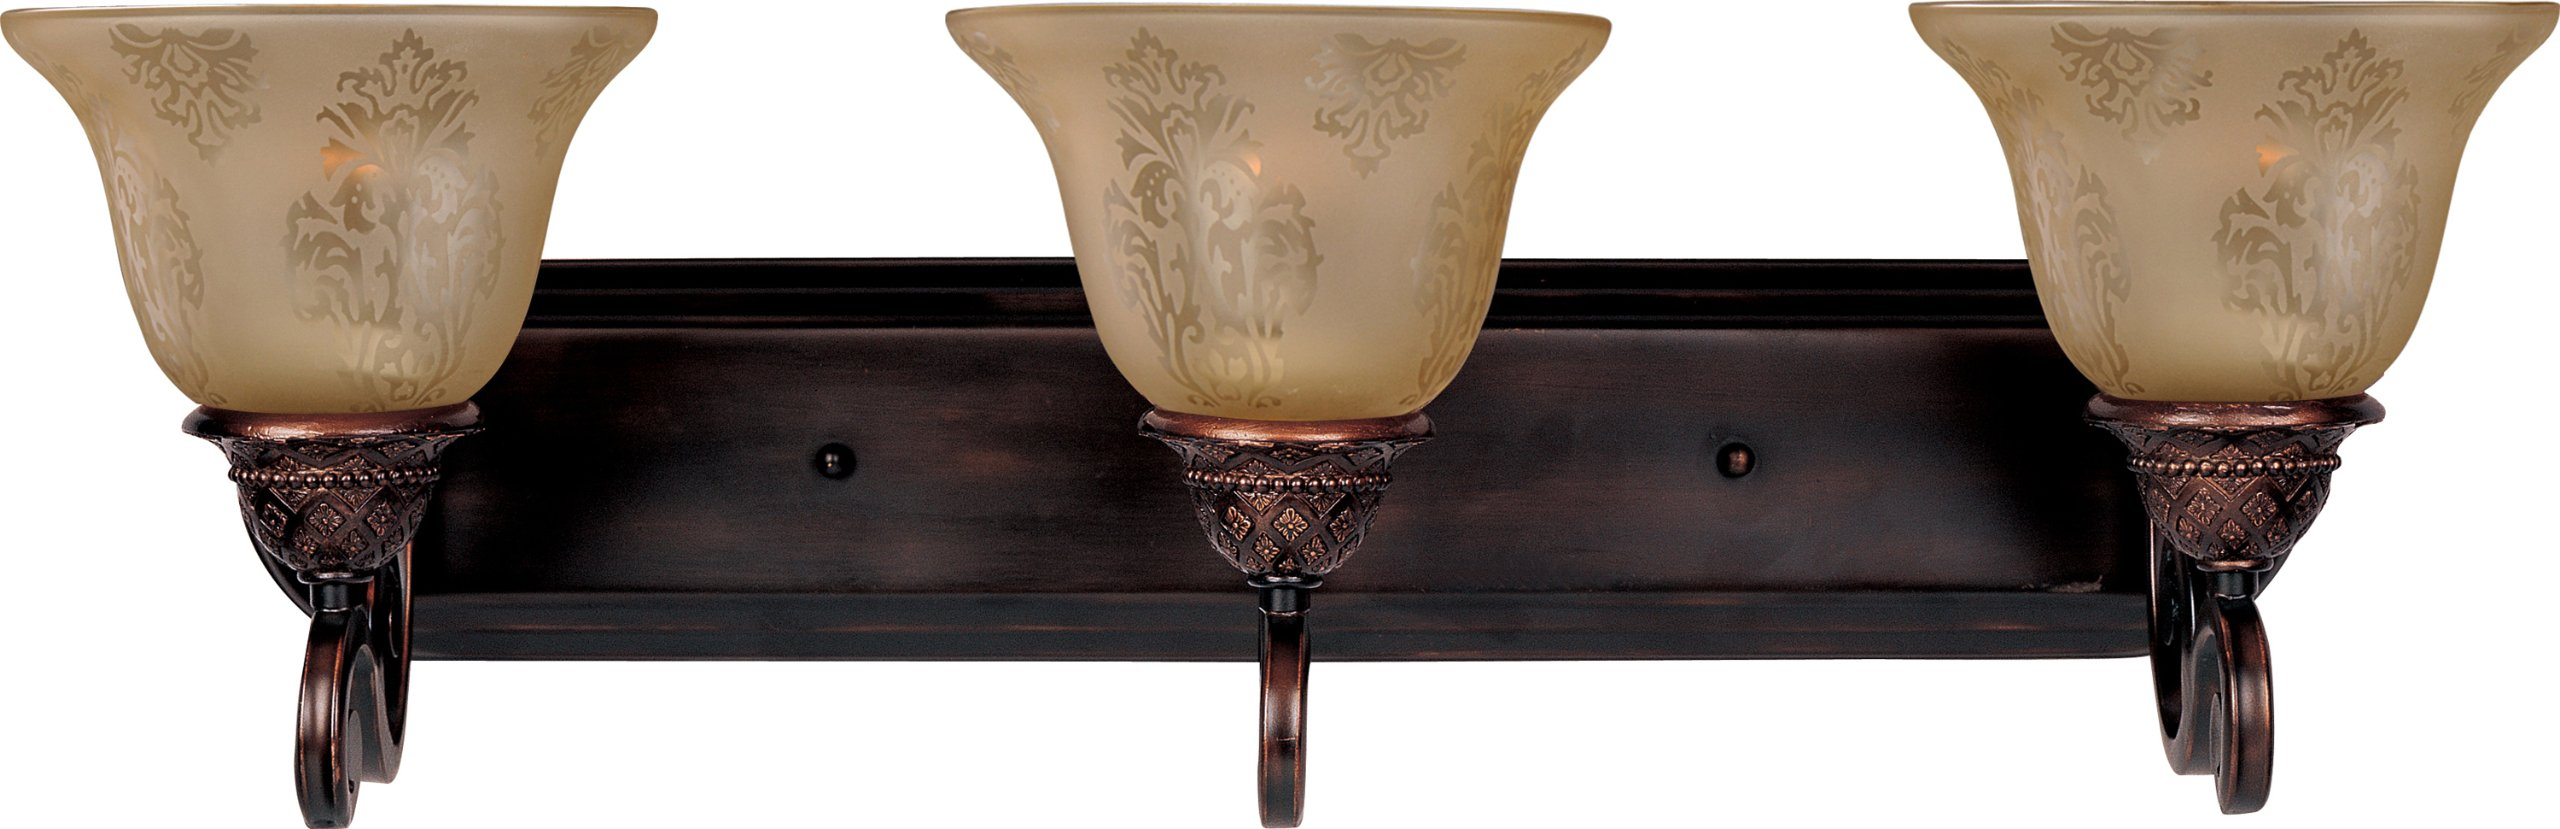 Maxim 11232SAOI Symphony 3-Light Bath Vanity, Oil Rubbed Bronze Finish, Screen Amber Glass, MB Incandescent Incandescent Bulb , 60W Max., Dry Safety Rating, Standard Dimmable, Metal Shade Material, Rated Lumens by Maxim Lighting